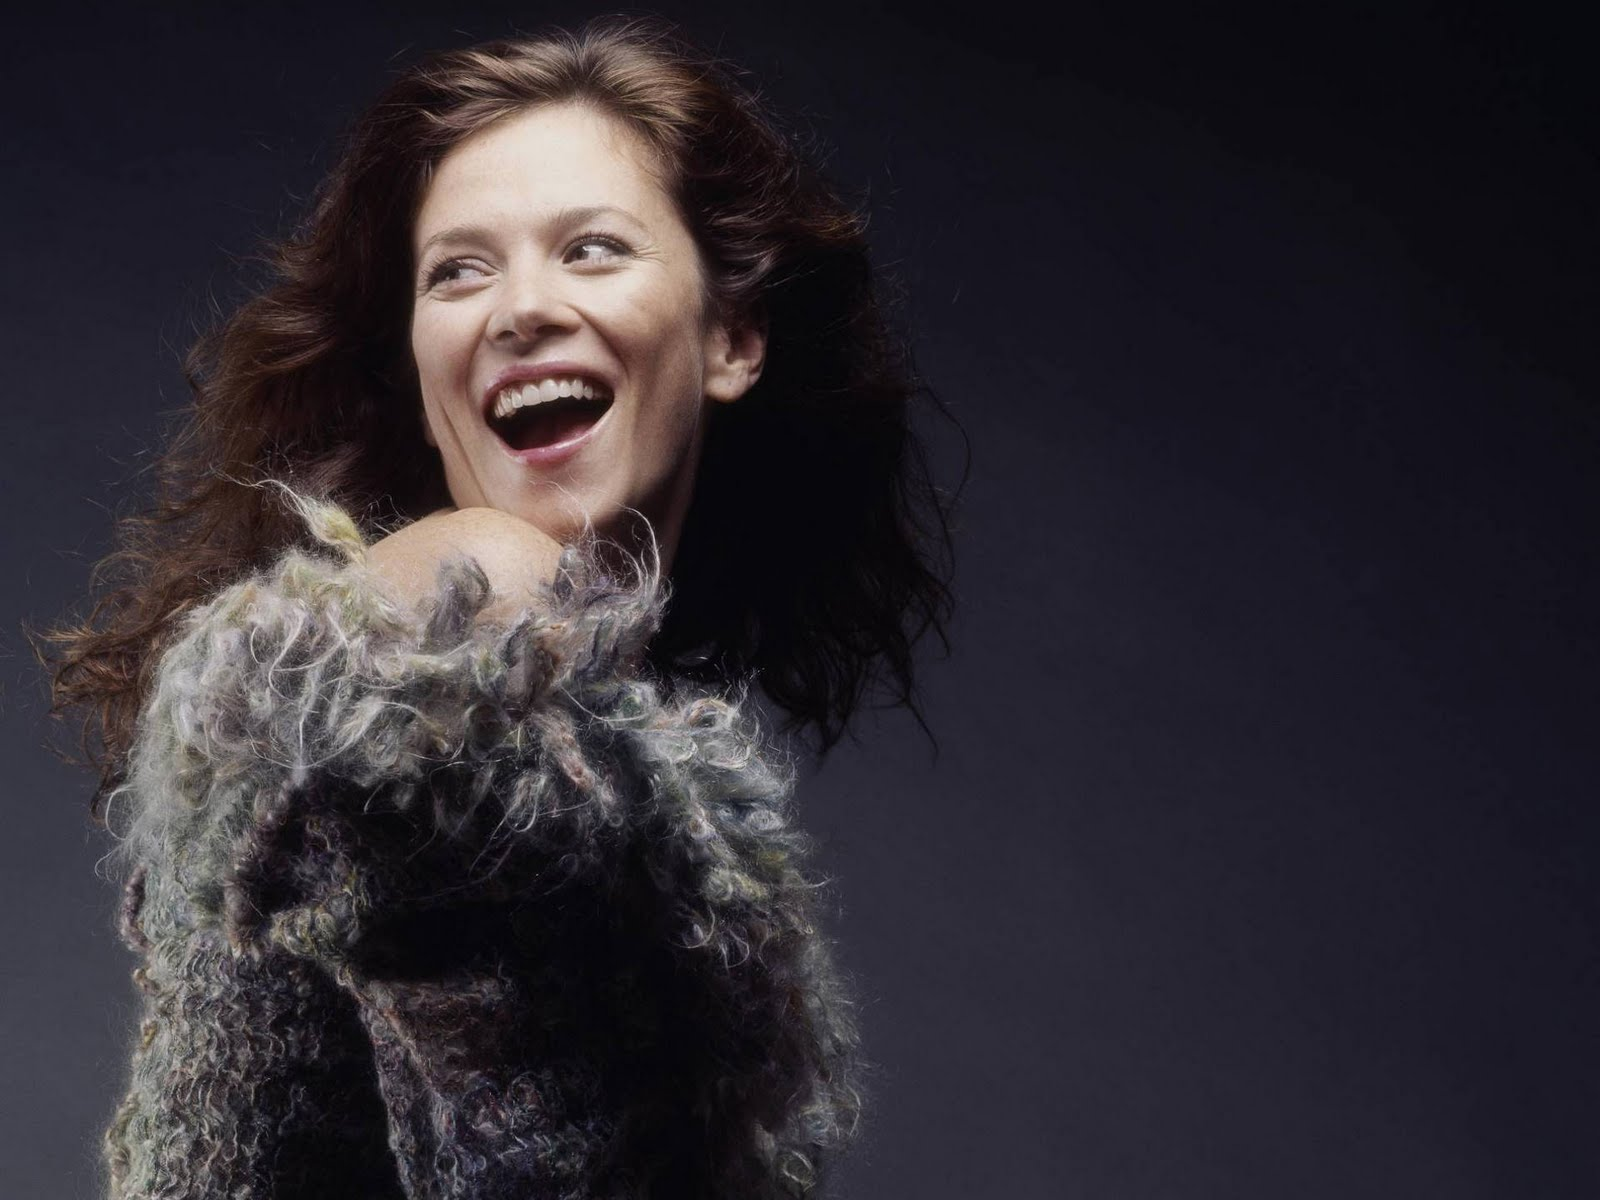 Anna Friel Hot Pictures, Photo Gallery & Wallpapers: Hot ...